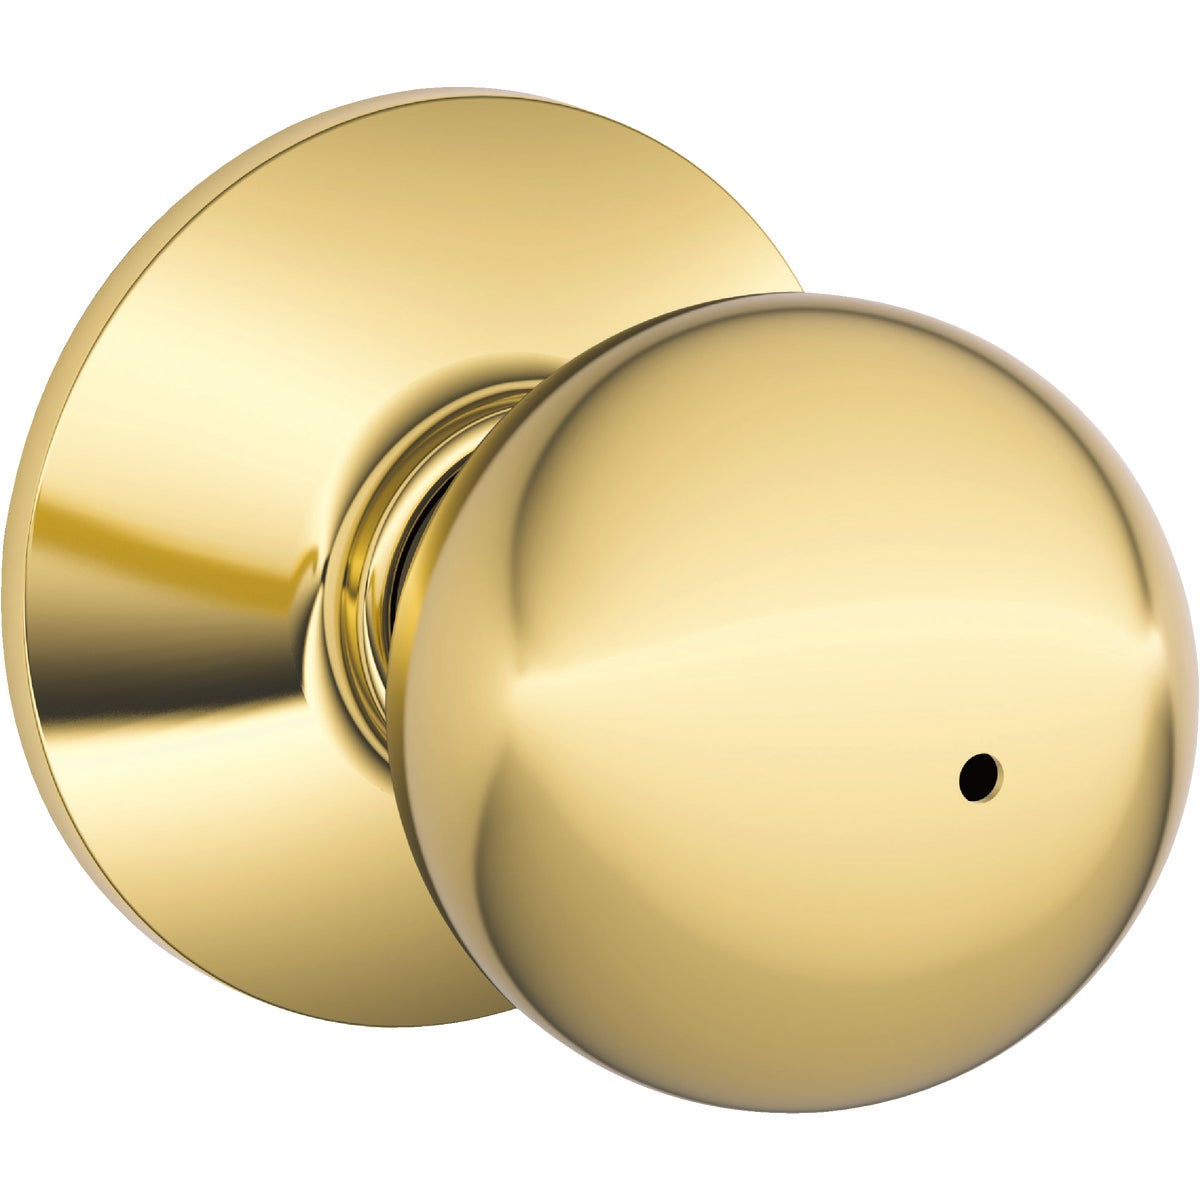 PB ORBIT PRIVACY KNOB BX - F40ORB605 by Schlage Lock Co